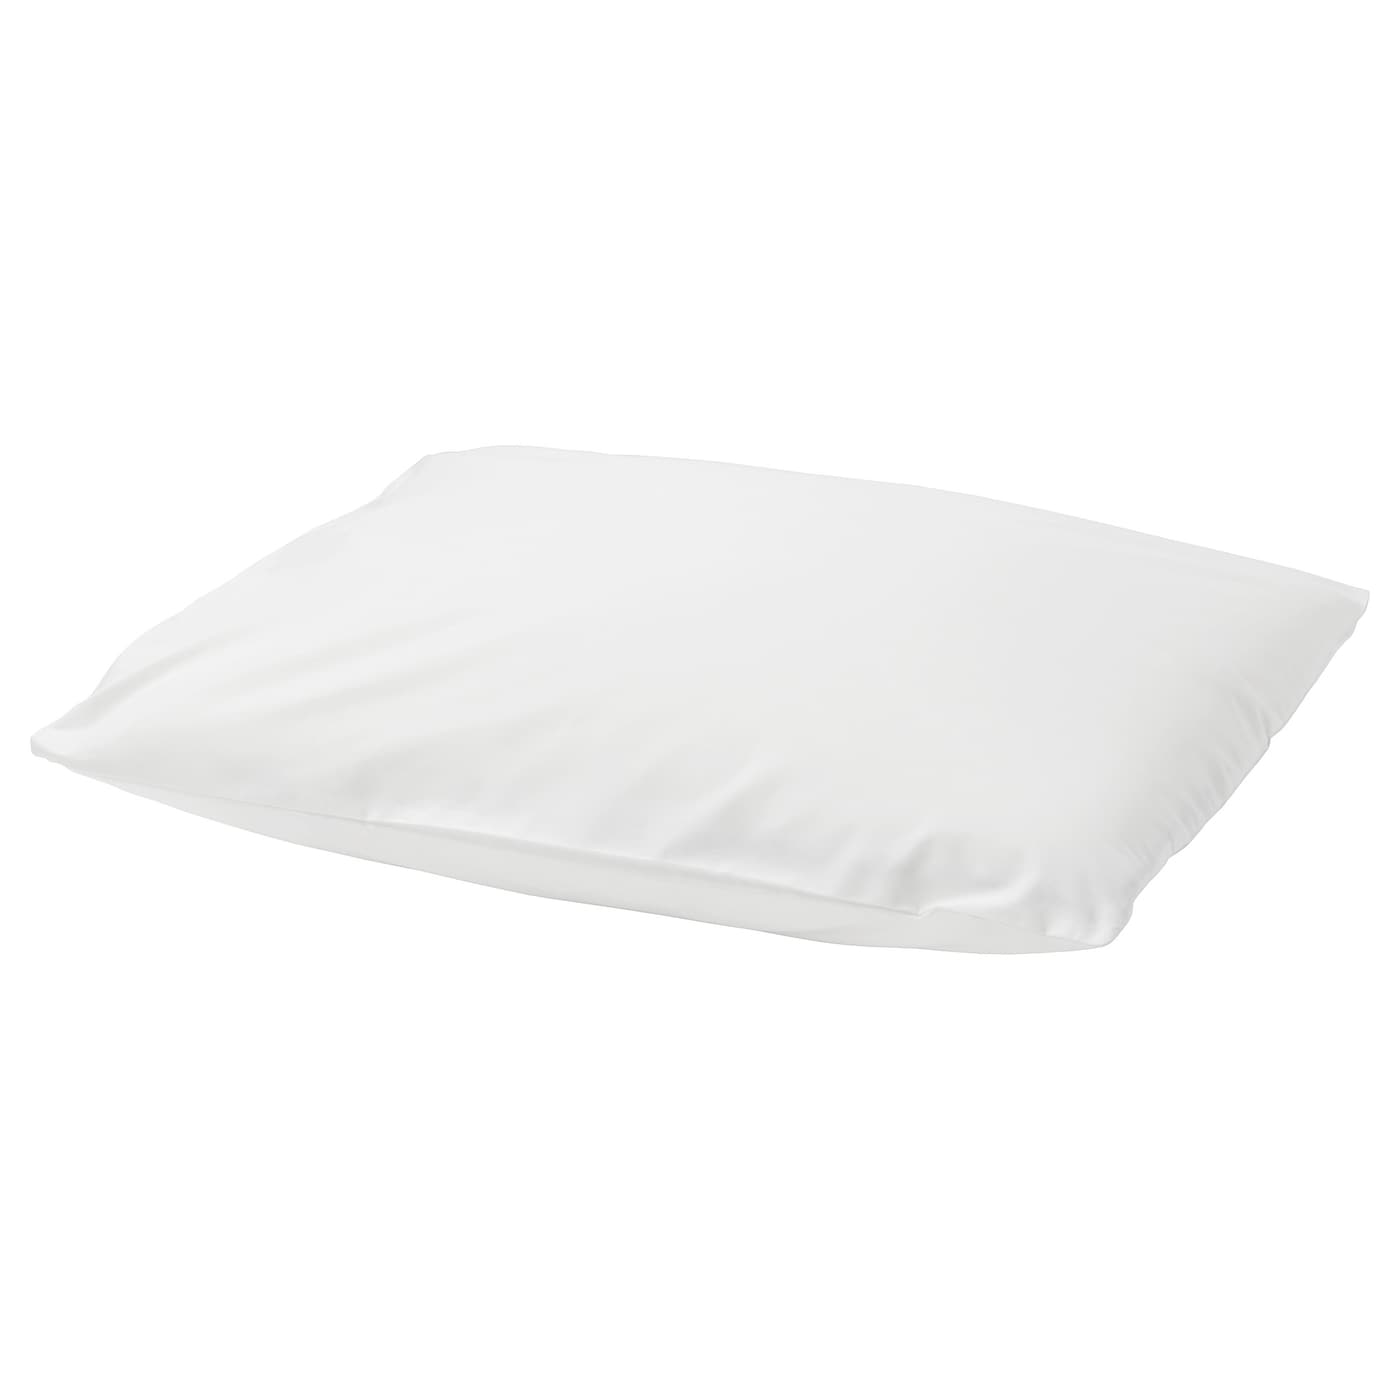 IKEA MÅNVIVA pillowcase for memory foam pillow